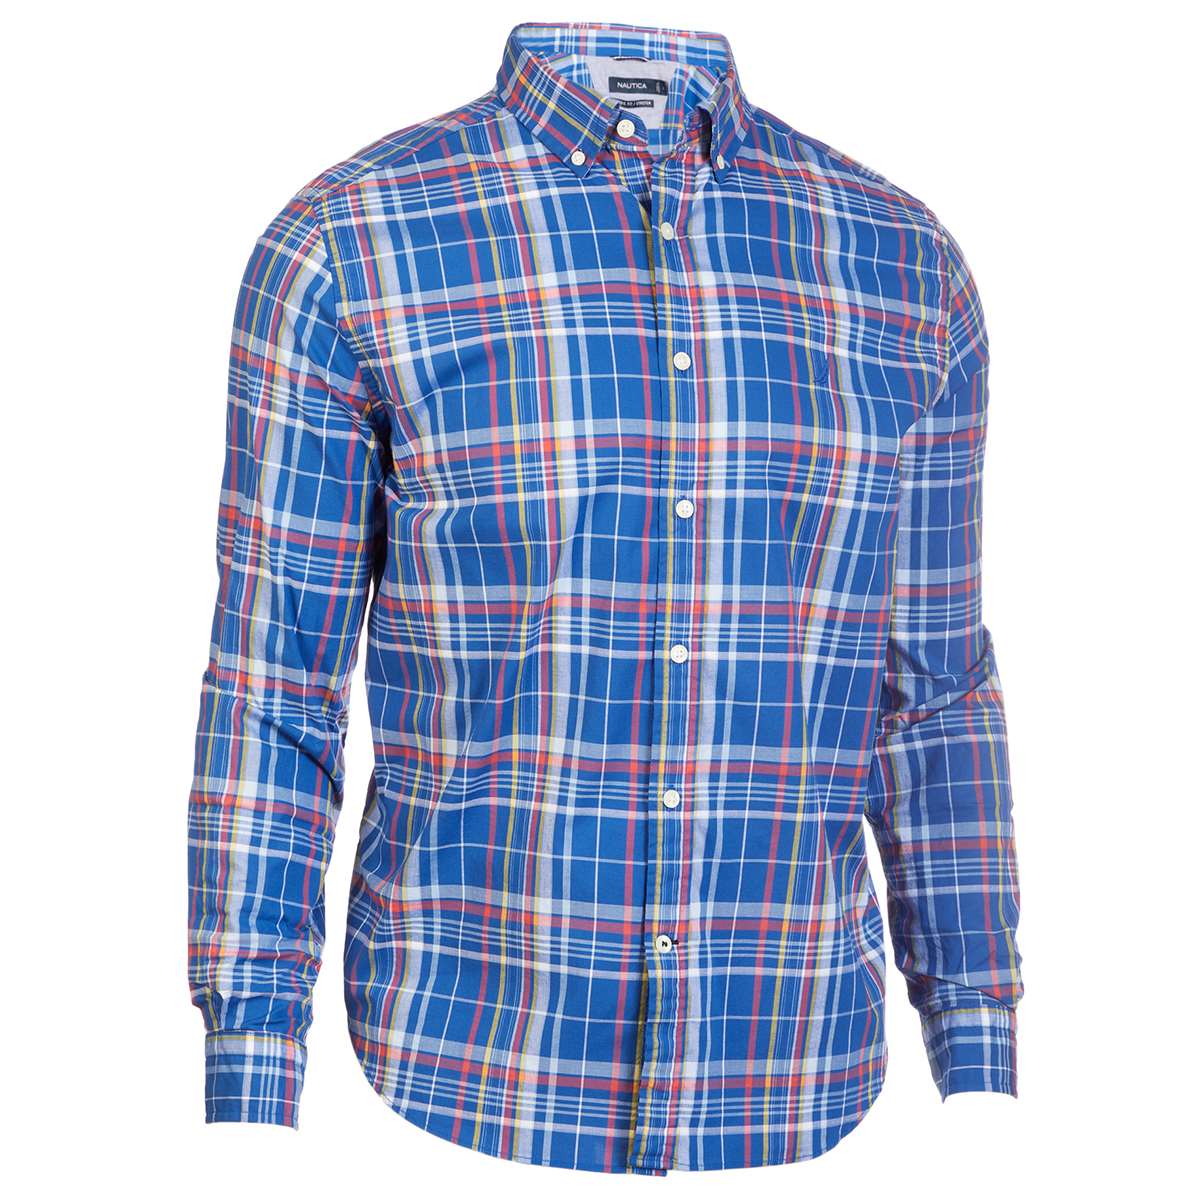 Nautica Men's Navtech Long-Sleeve Button Down Shirt - Blue, XL